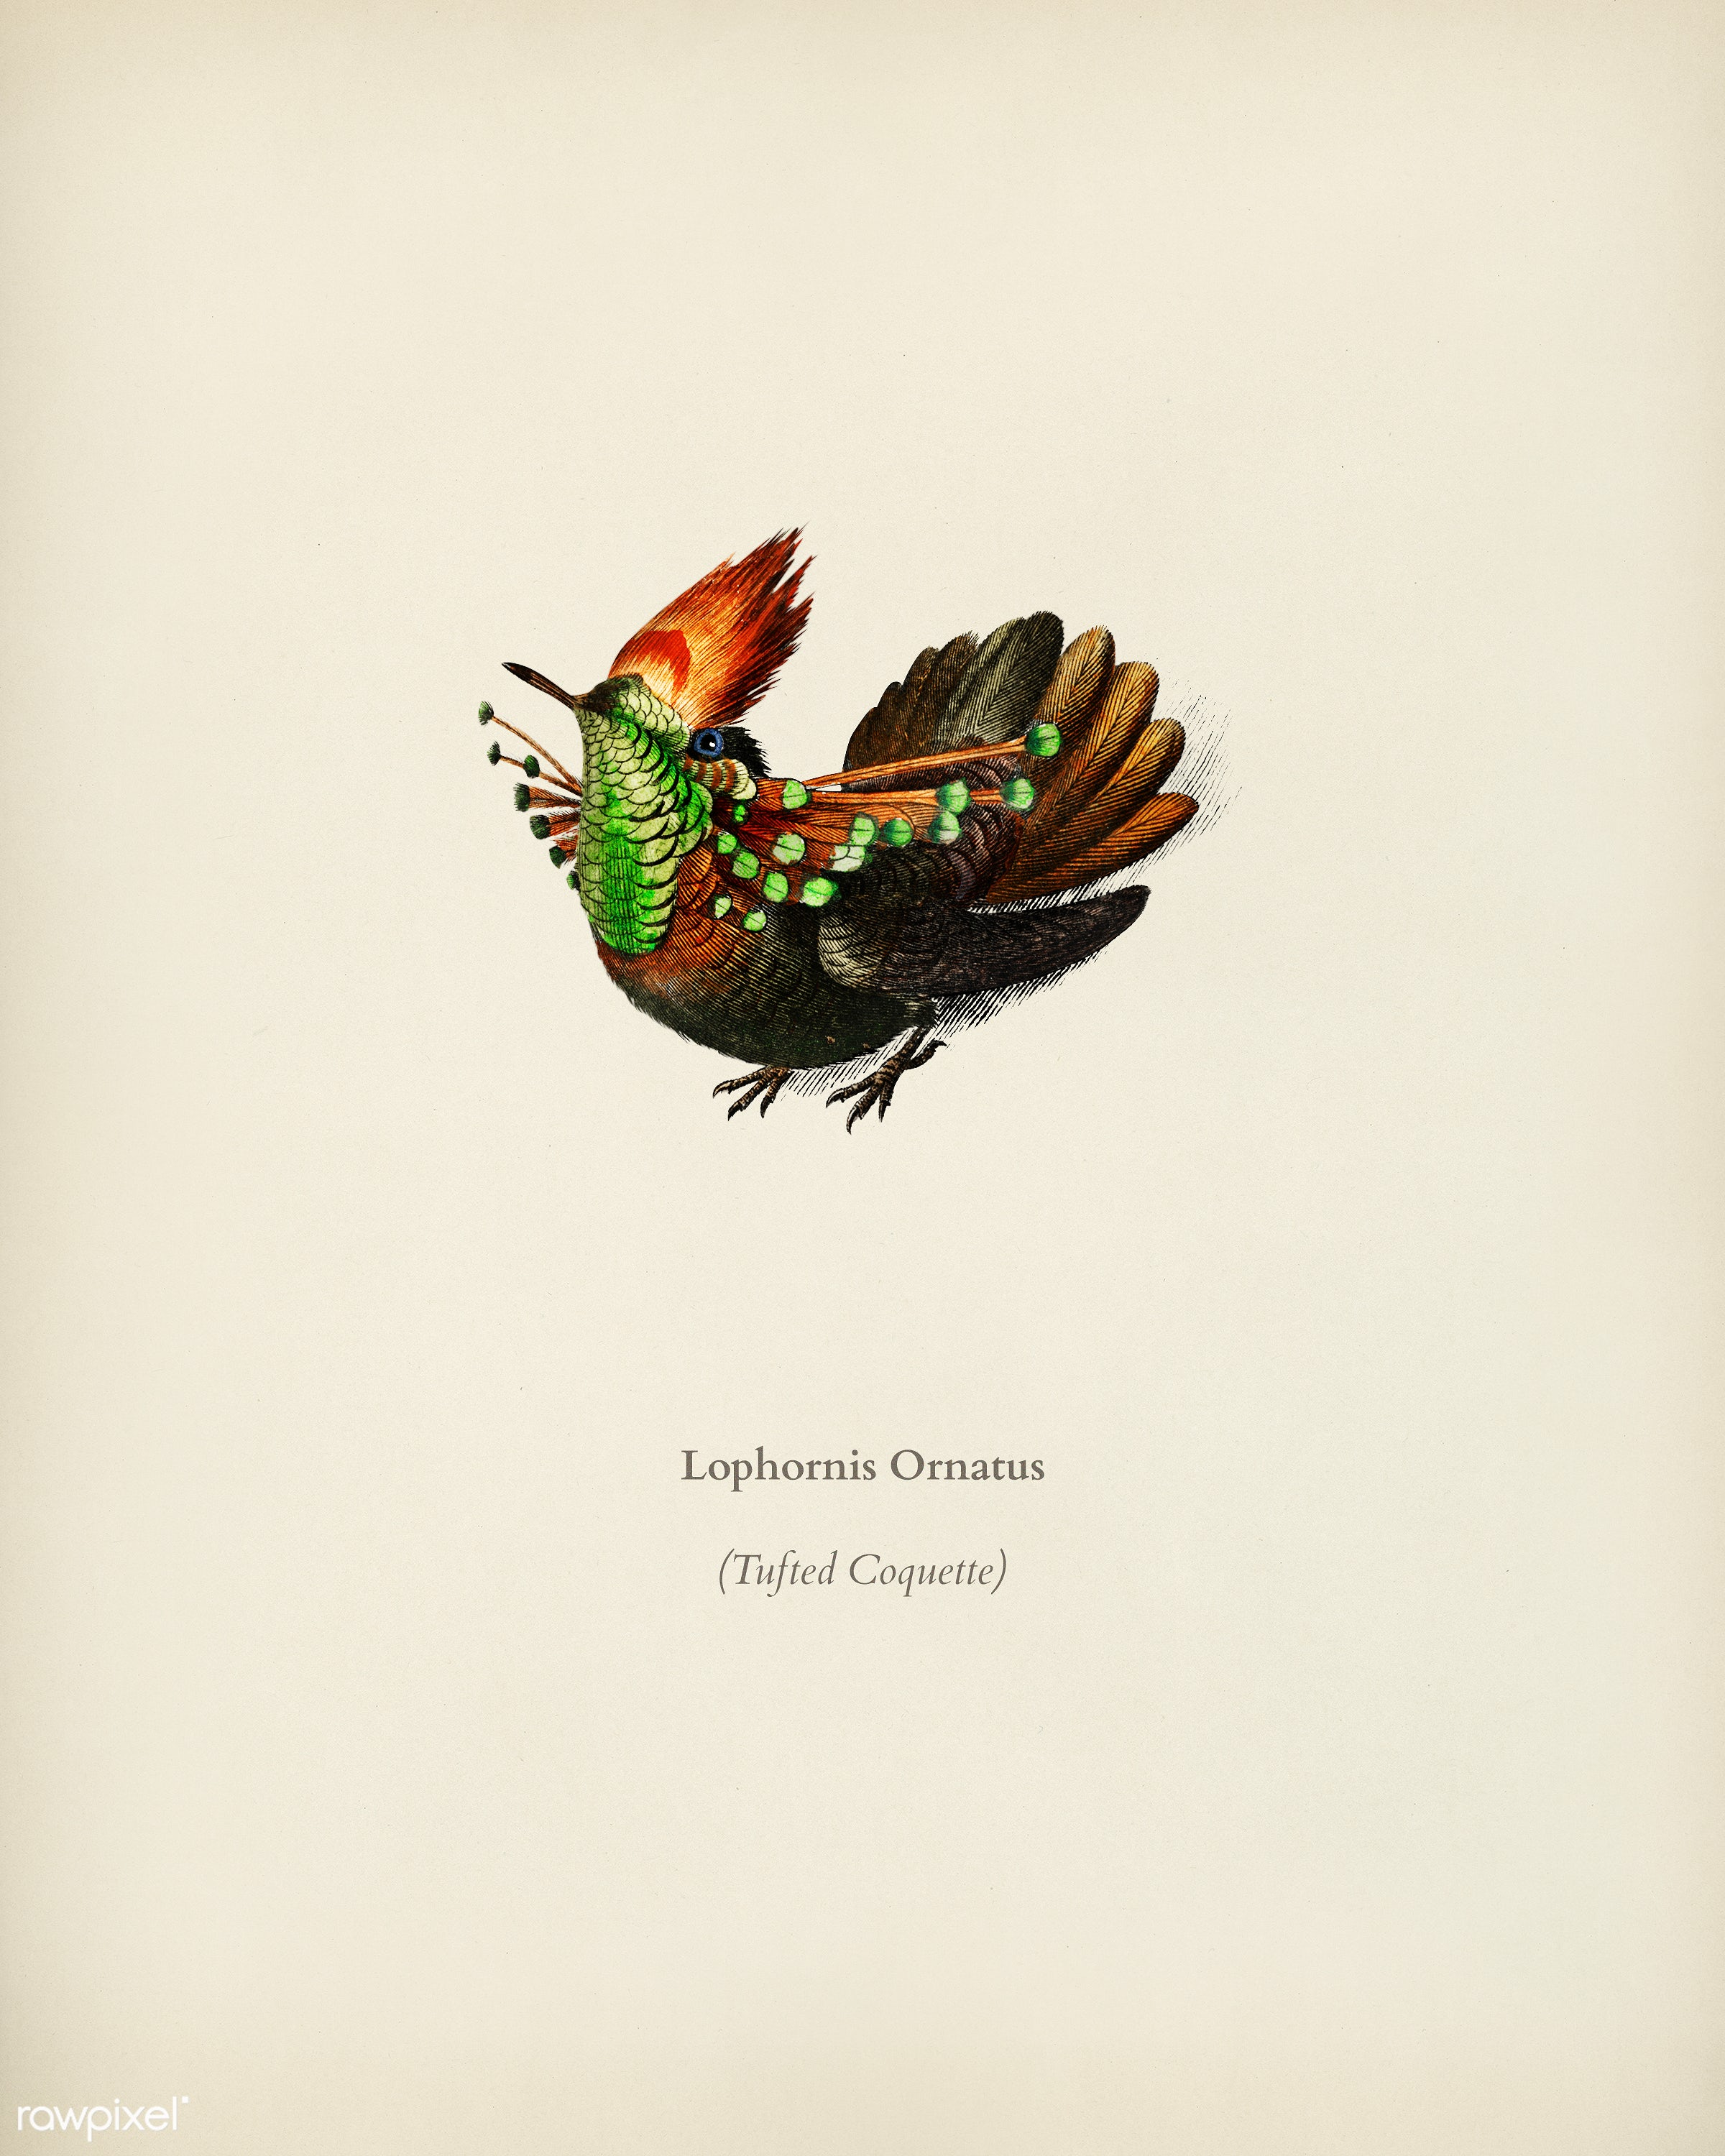 Tufted Coquette (Lophornis Ornatus) illustrated by Charles Dessalines D' Orbigny (1806-1876). Digitally enhanced from...